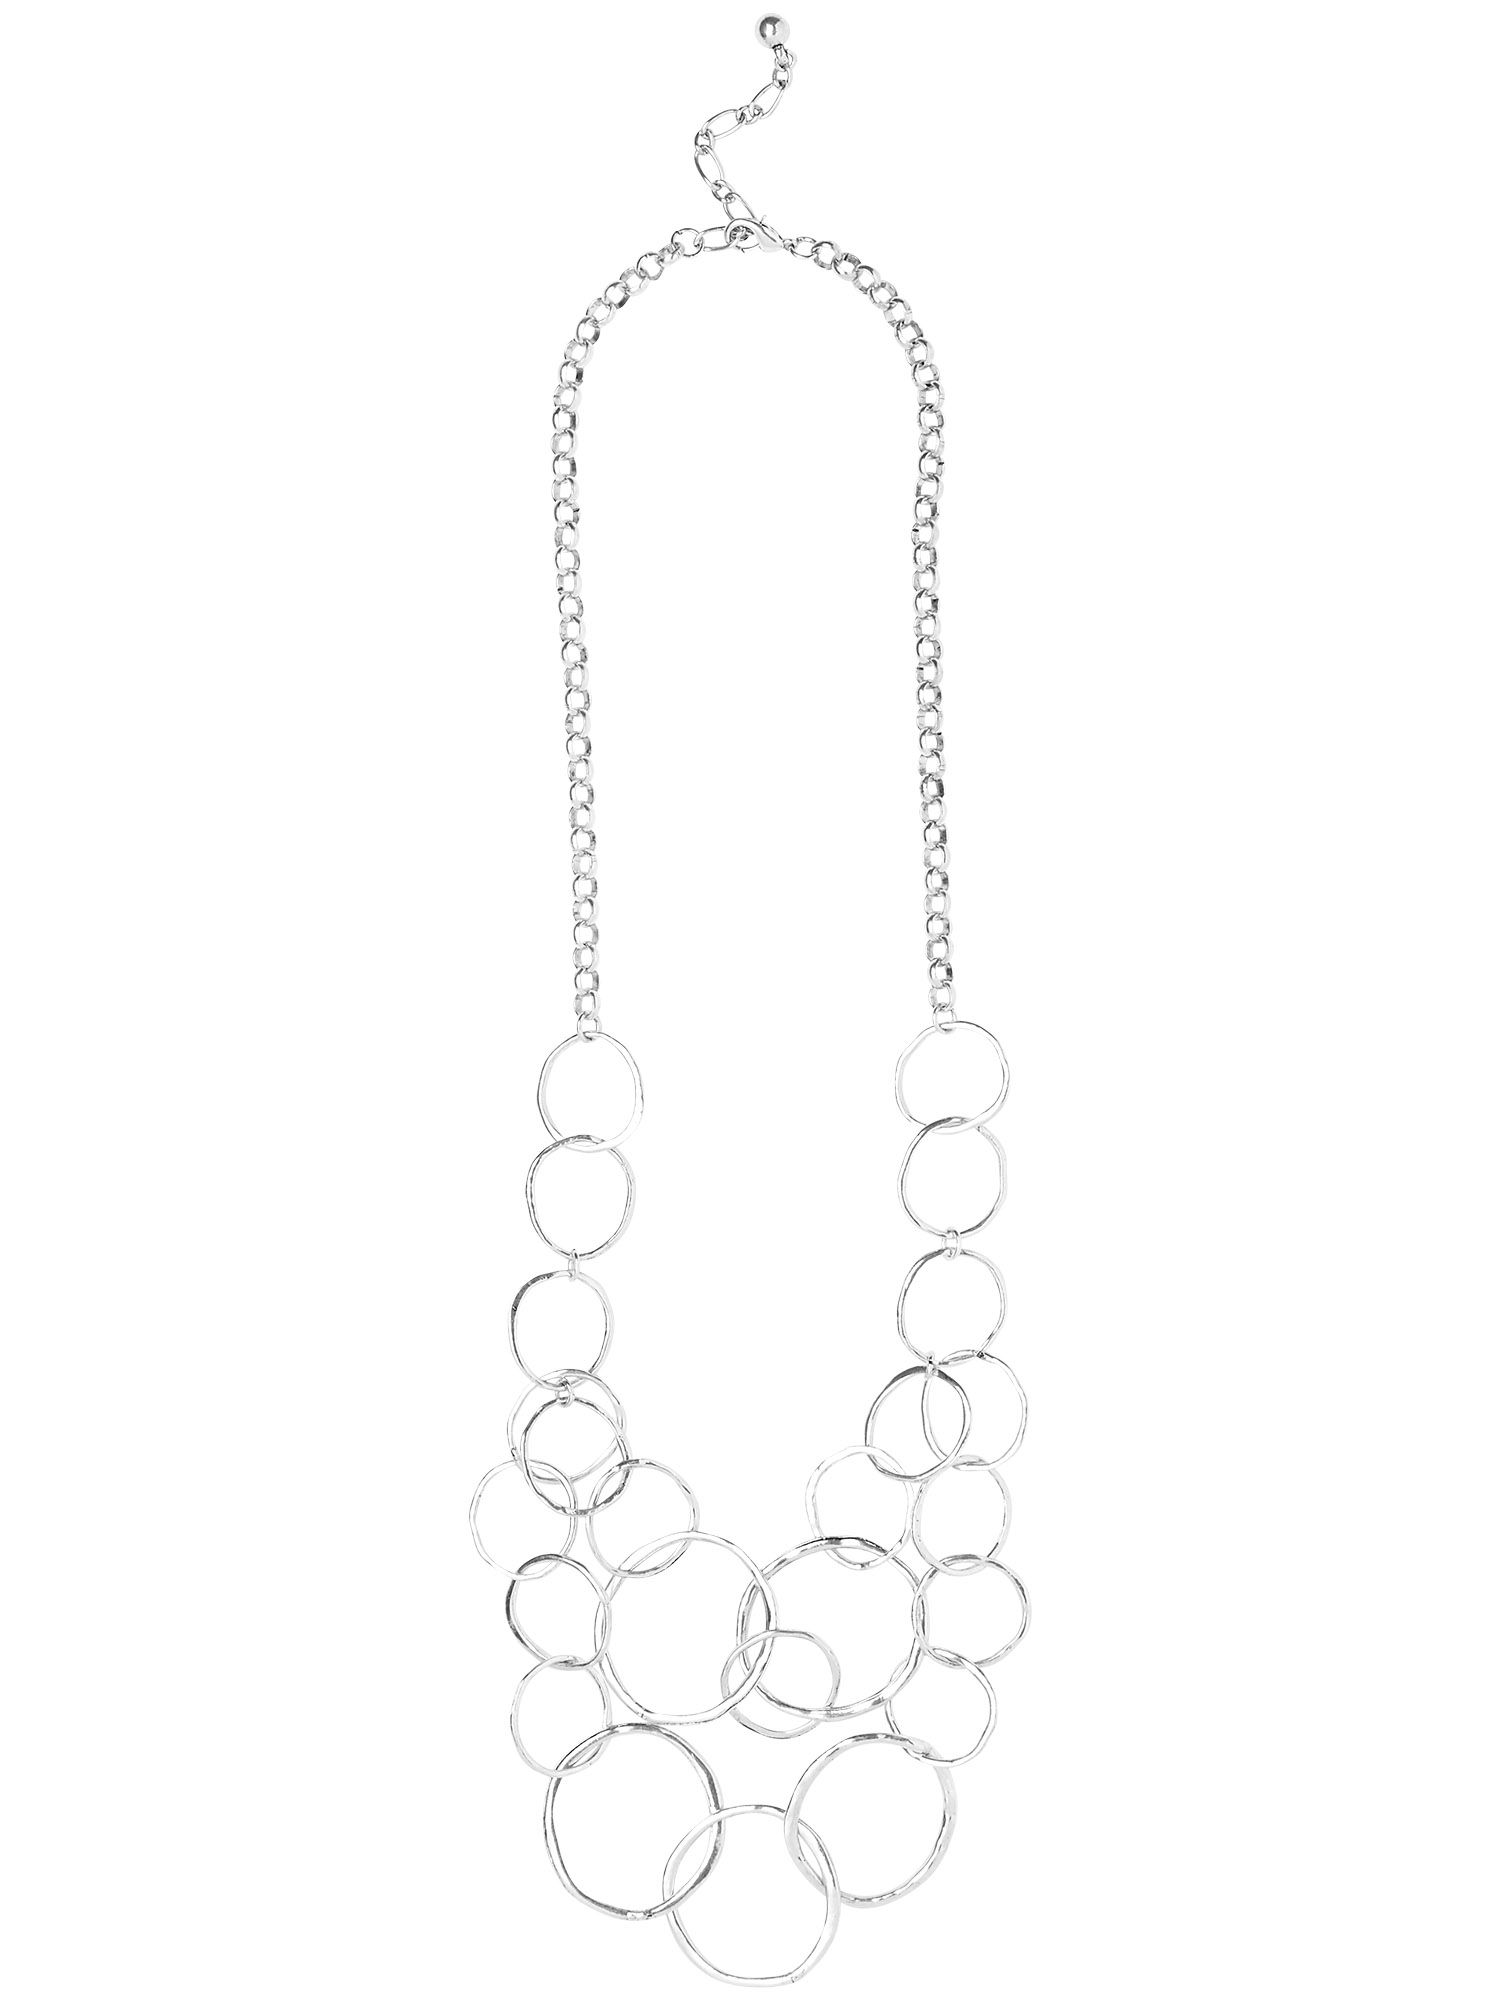 Sofie rings necklace